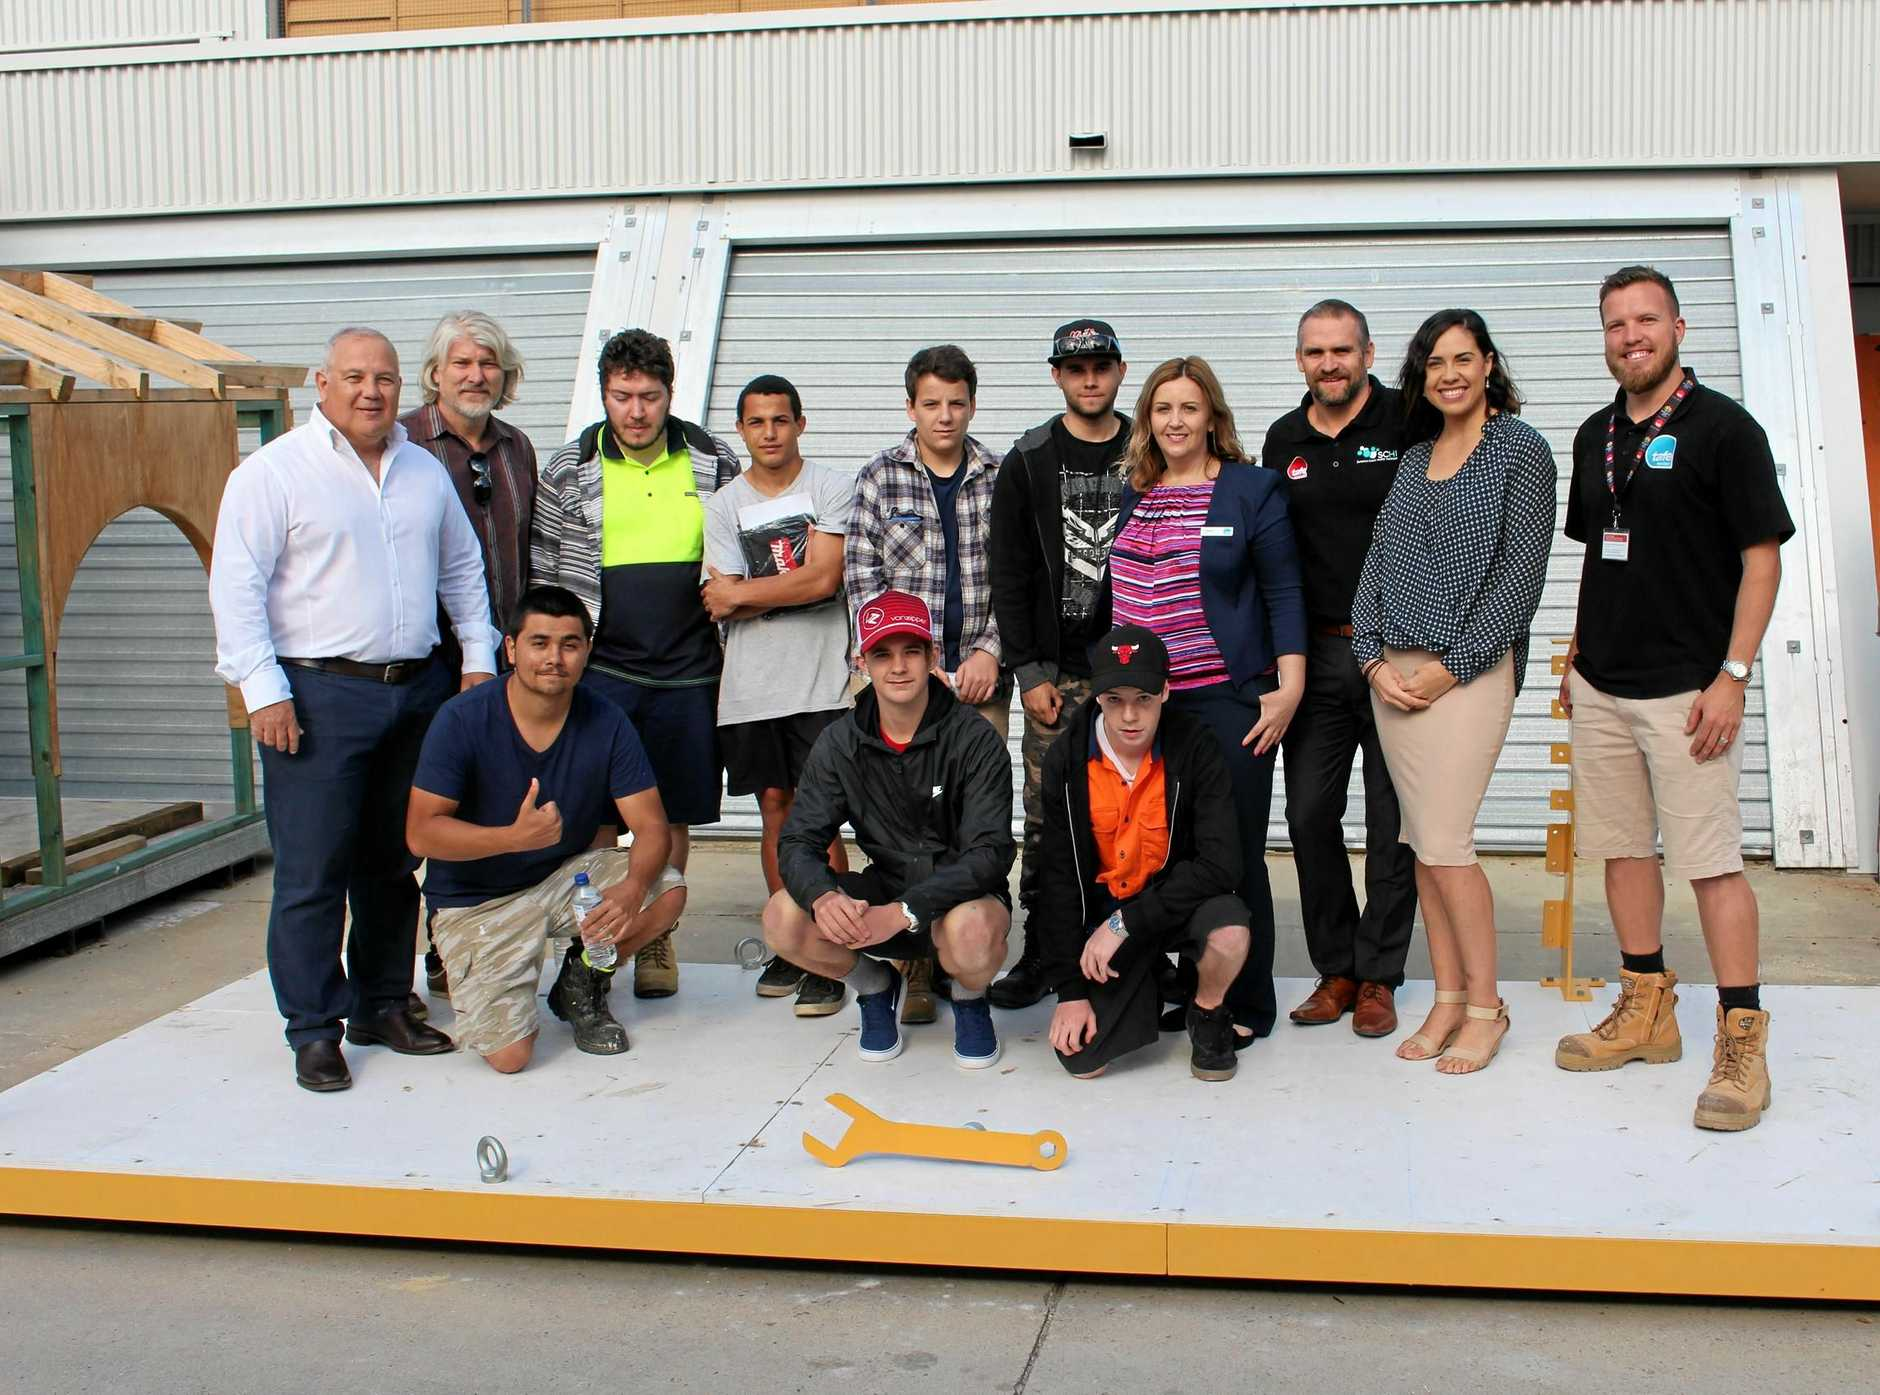 CEMENTING PARTNERSHIP: Students from Nambour TAFE with members of the Nambour Alliance and organisers of the Nambour Parklet project.